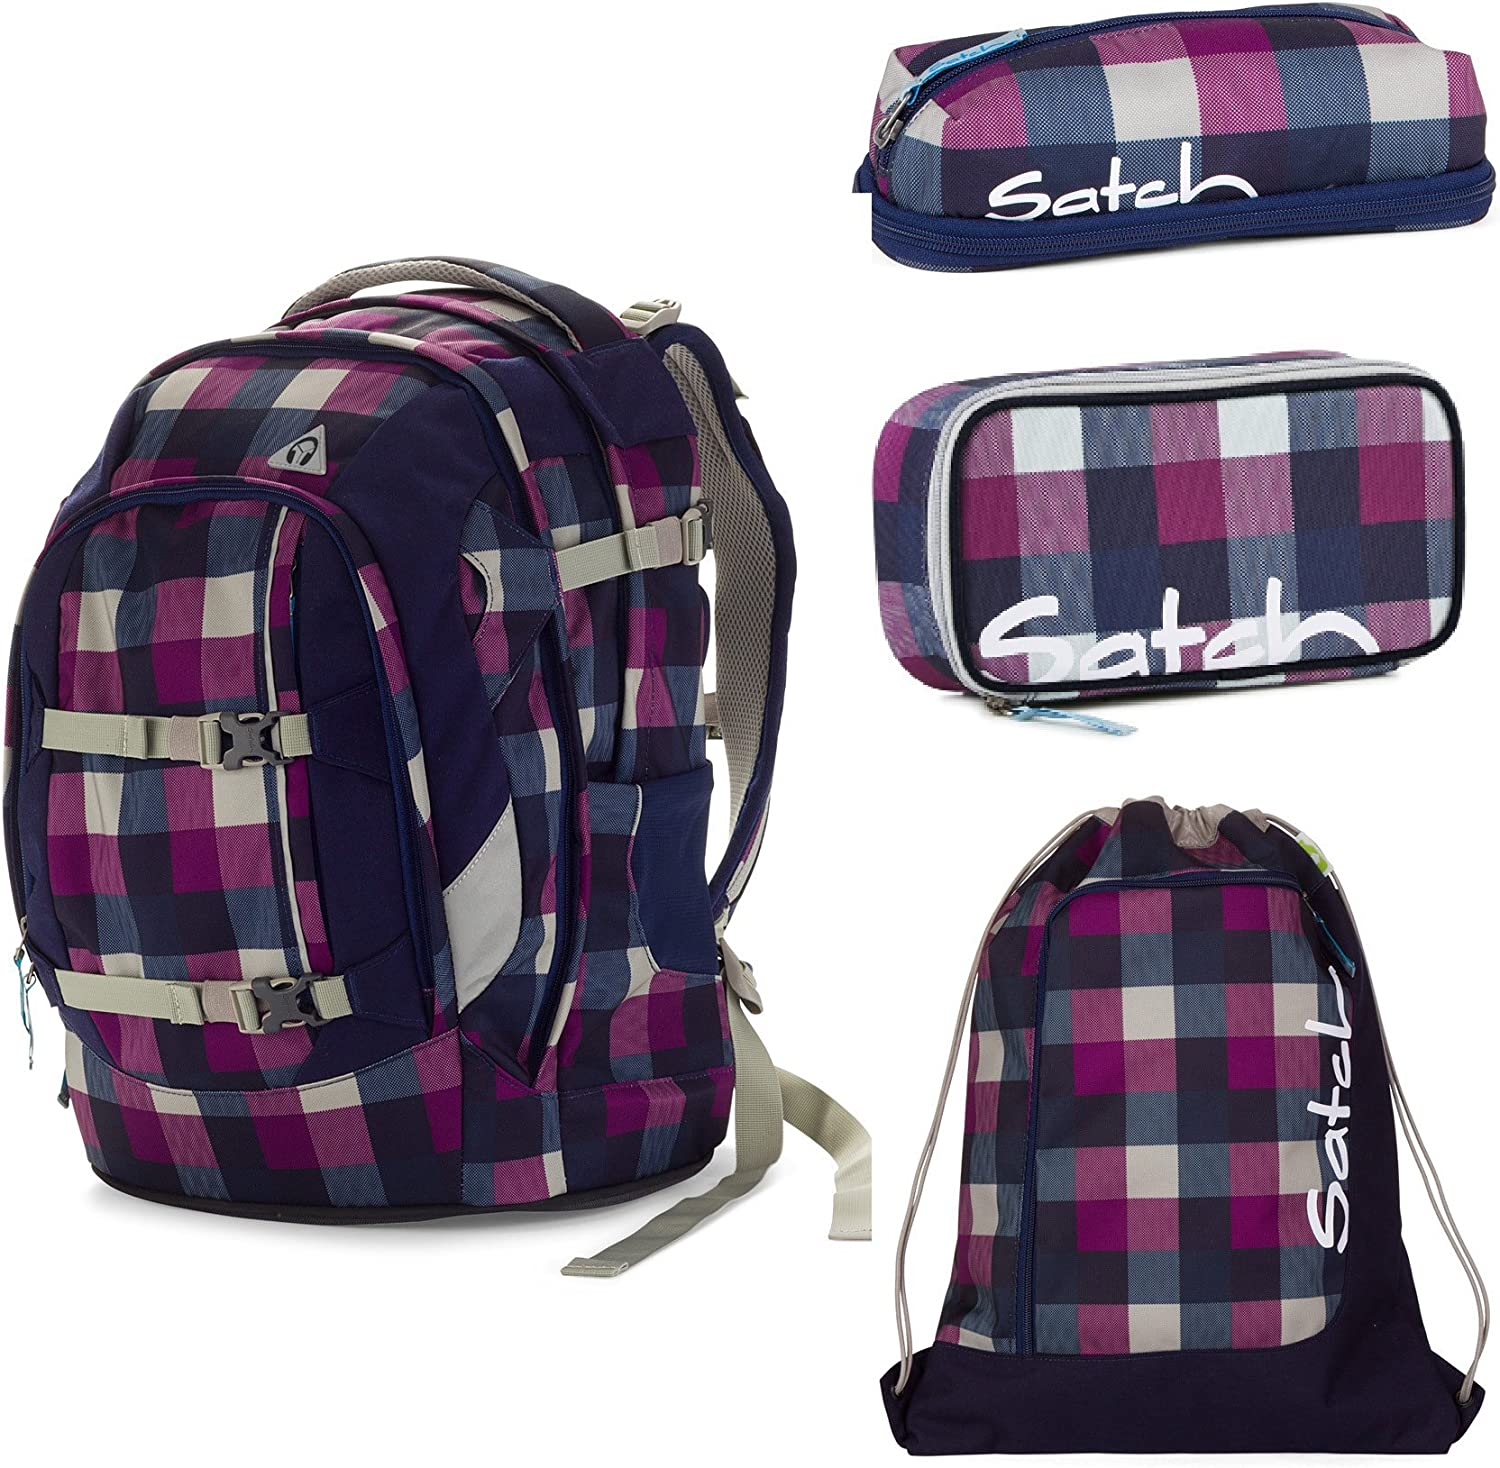 Satch Pack Berry Carry 4-teiliges Set Rucksack, Penbox, Schlamperbox & Sportbeutel